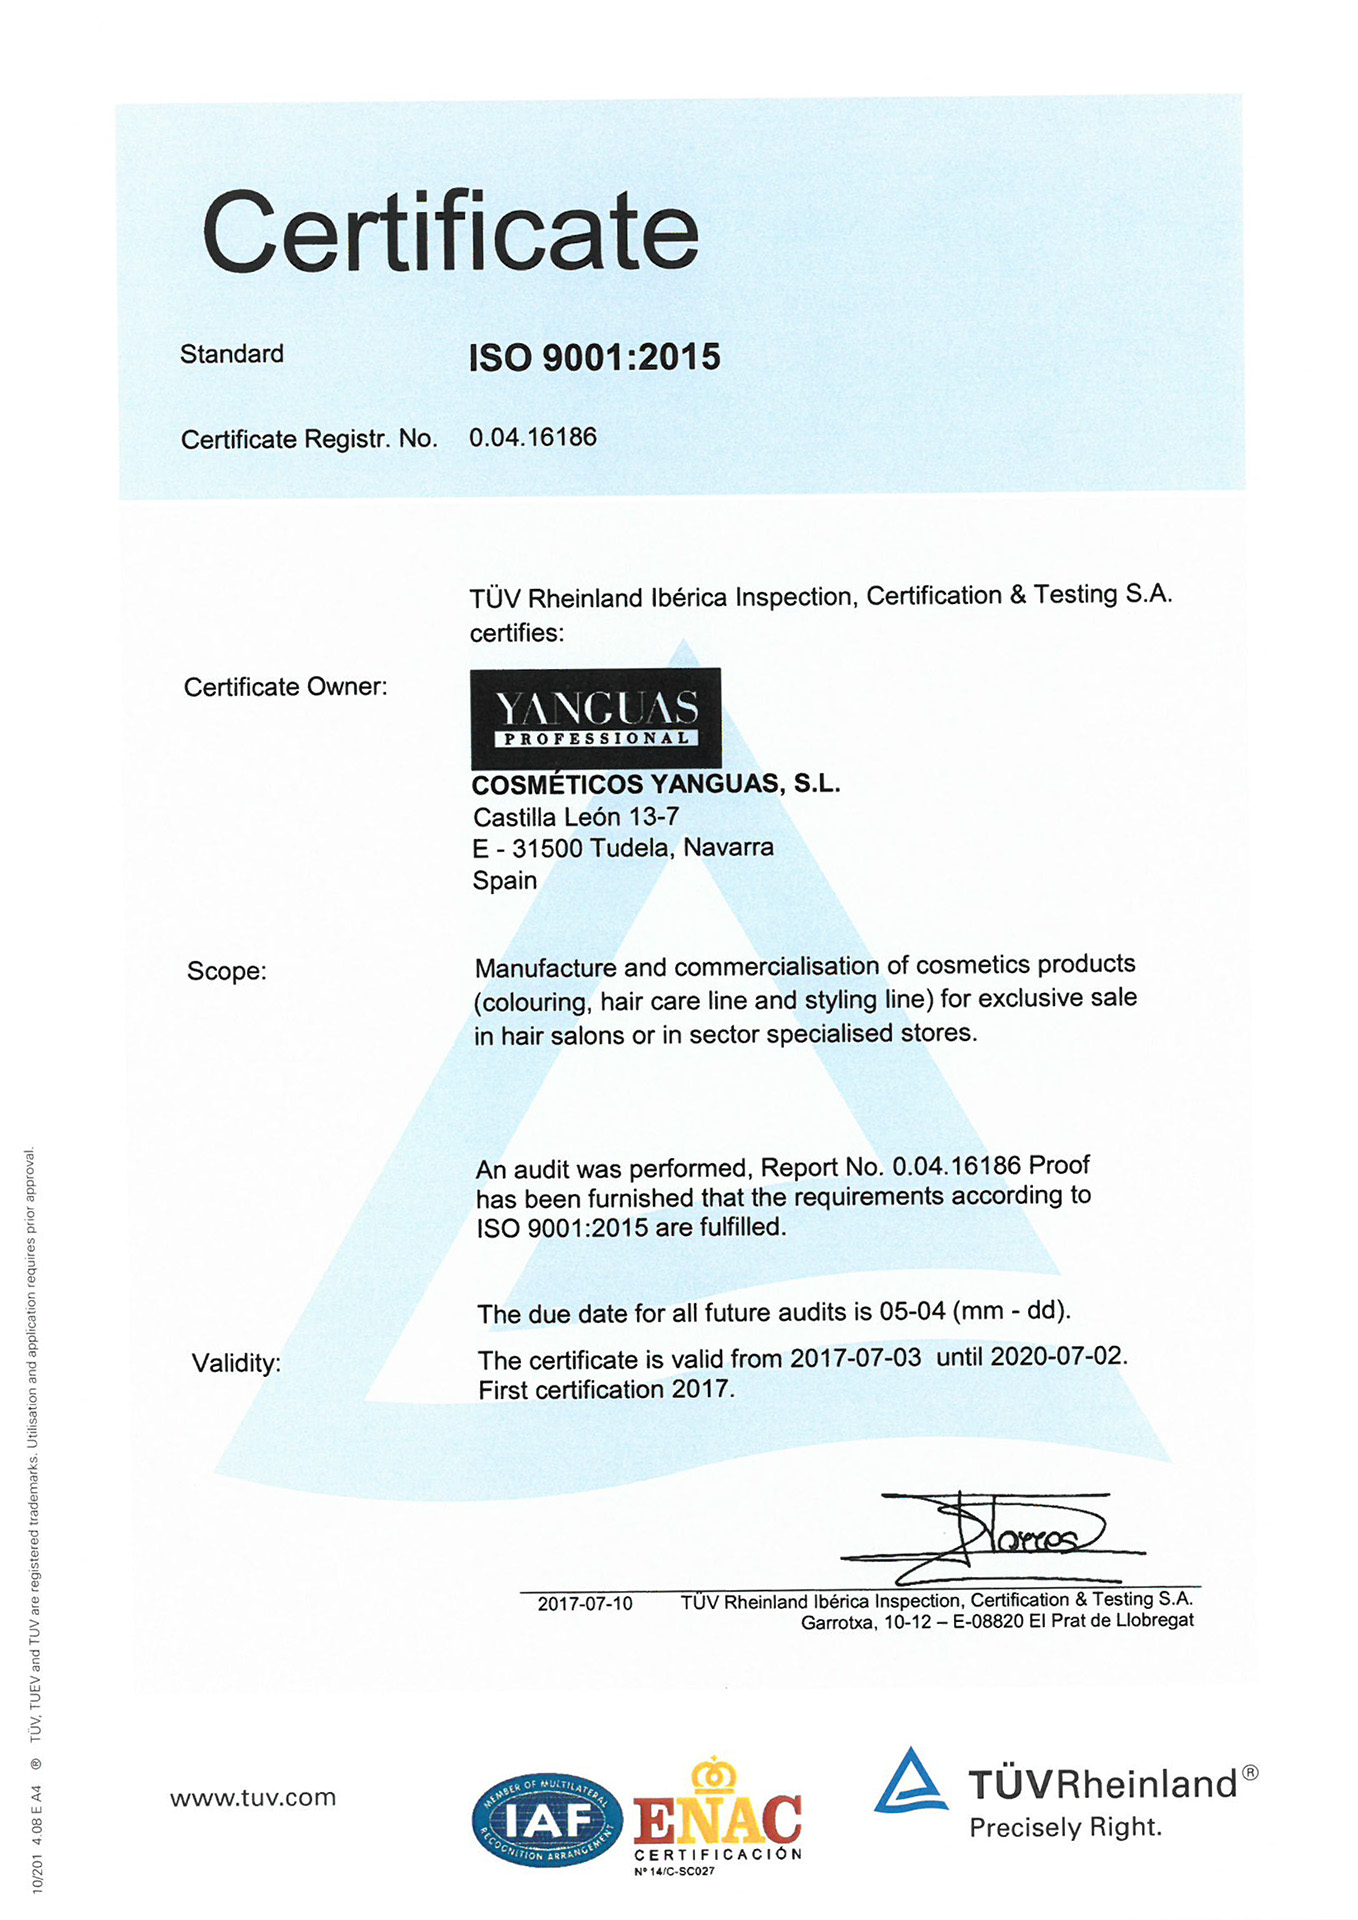 Yanguas Professional Certified Company ISO 9001 And ISO 22716